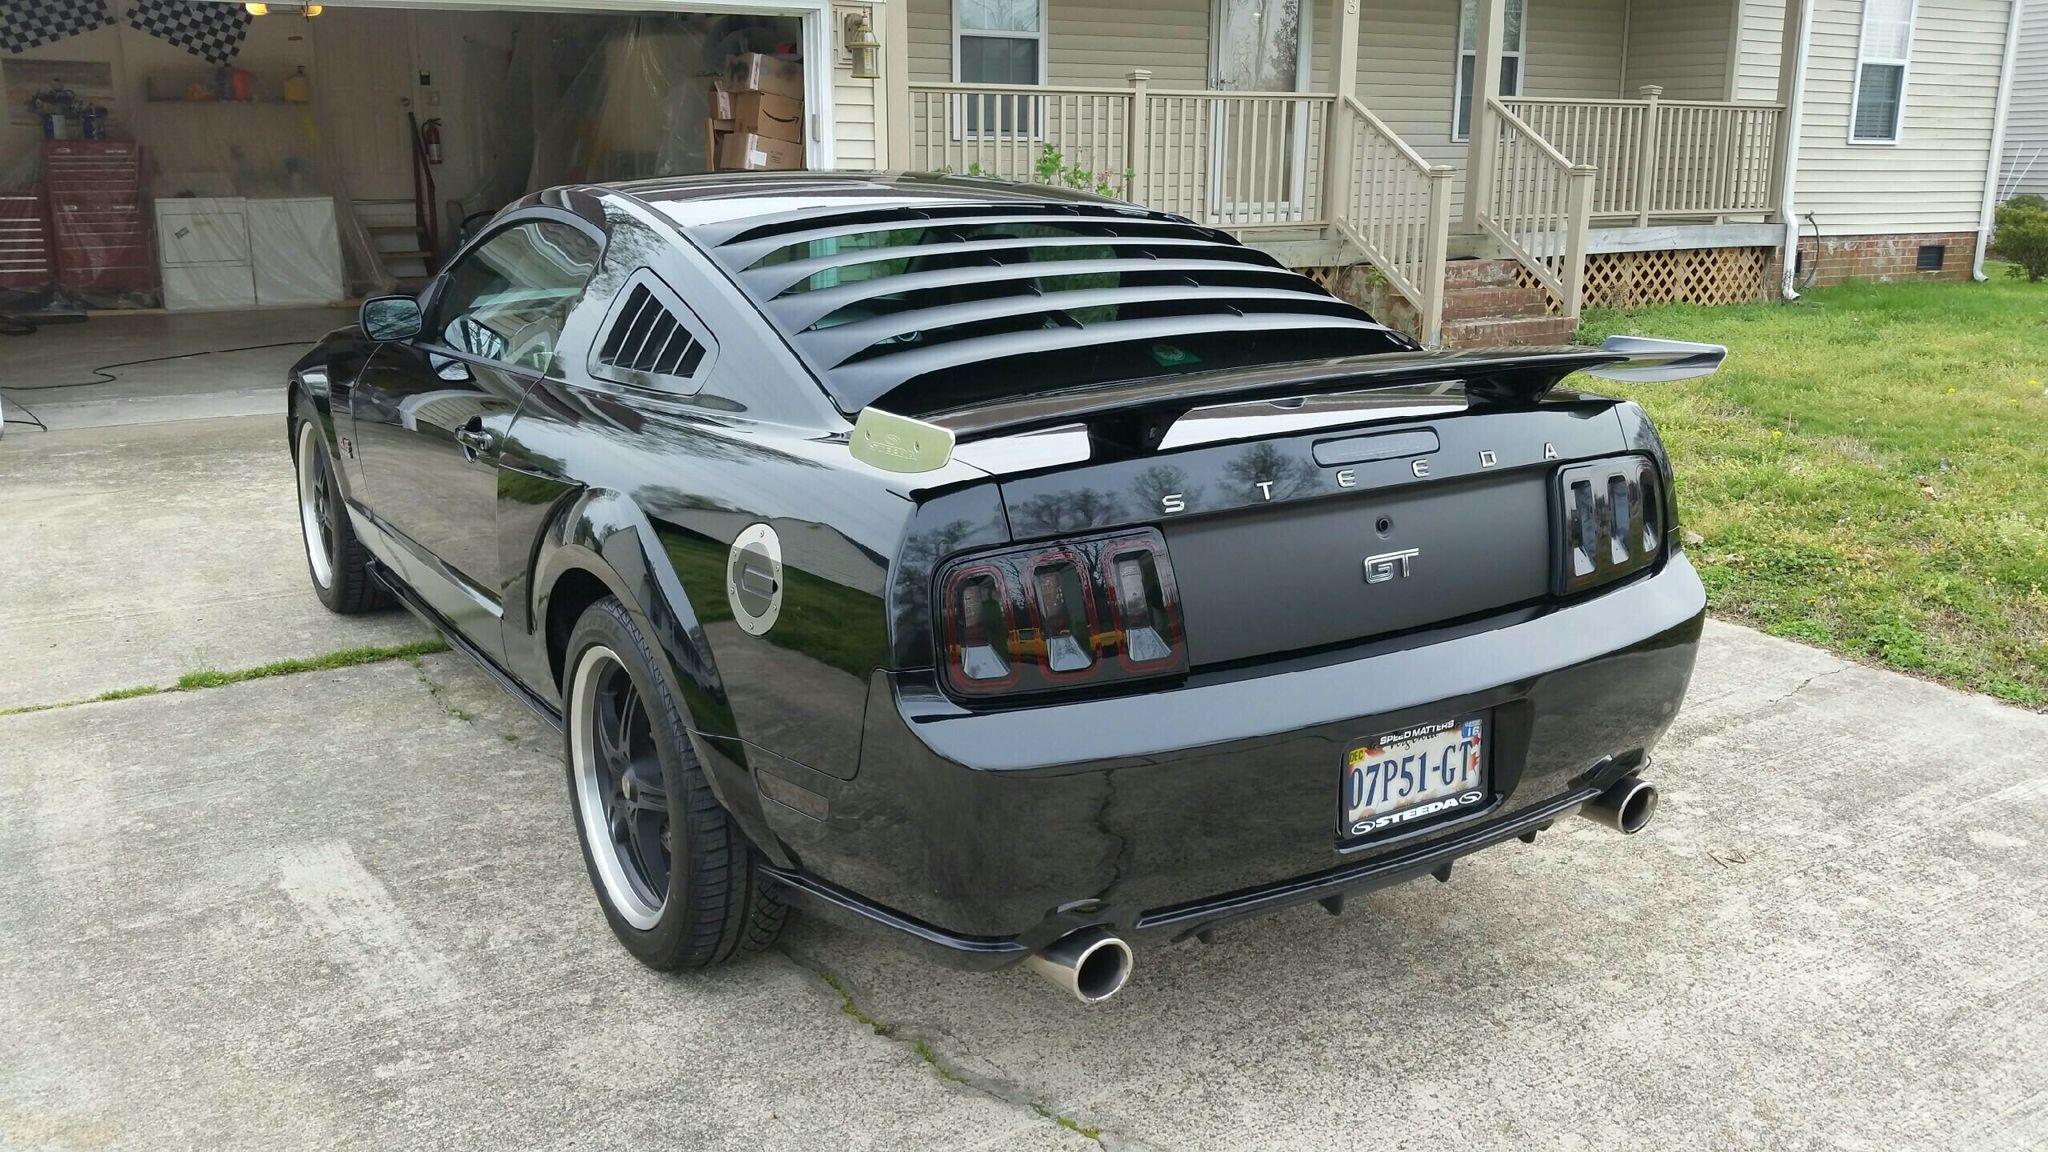 Black 2007 Ford Steeda Mustang Gt With Silver Horse Racing Rear Diffuser Quarter Window Louvers Mrt